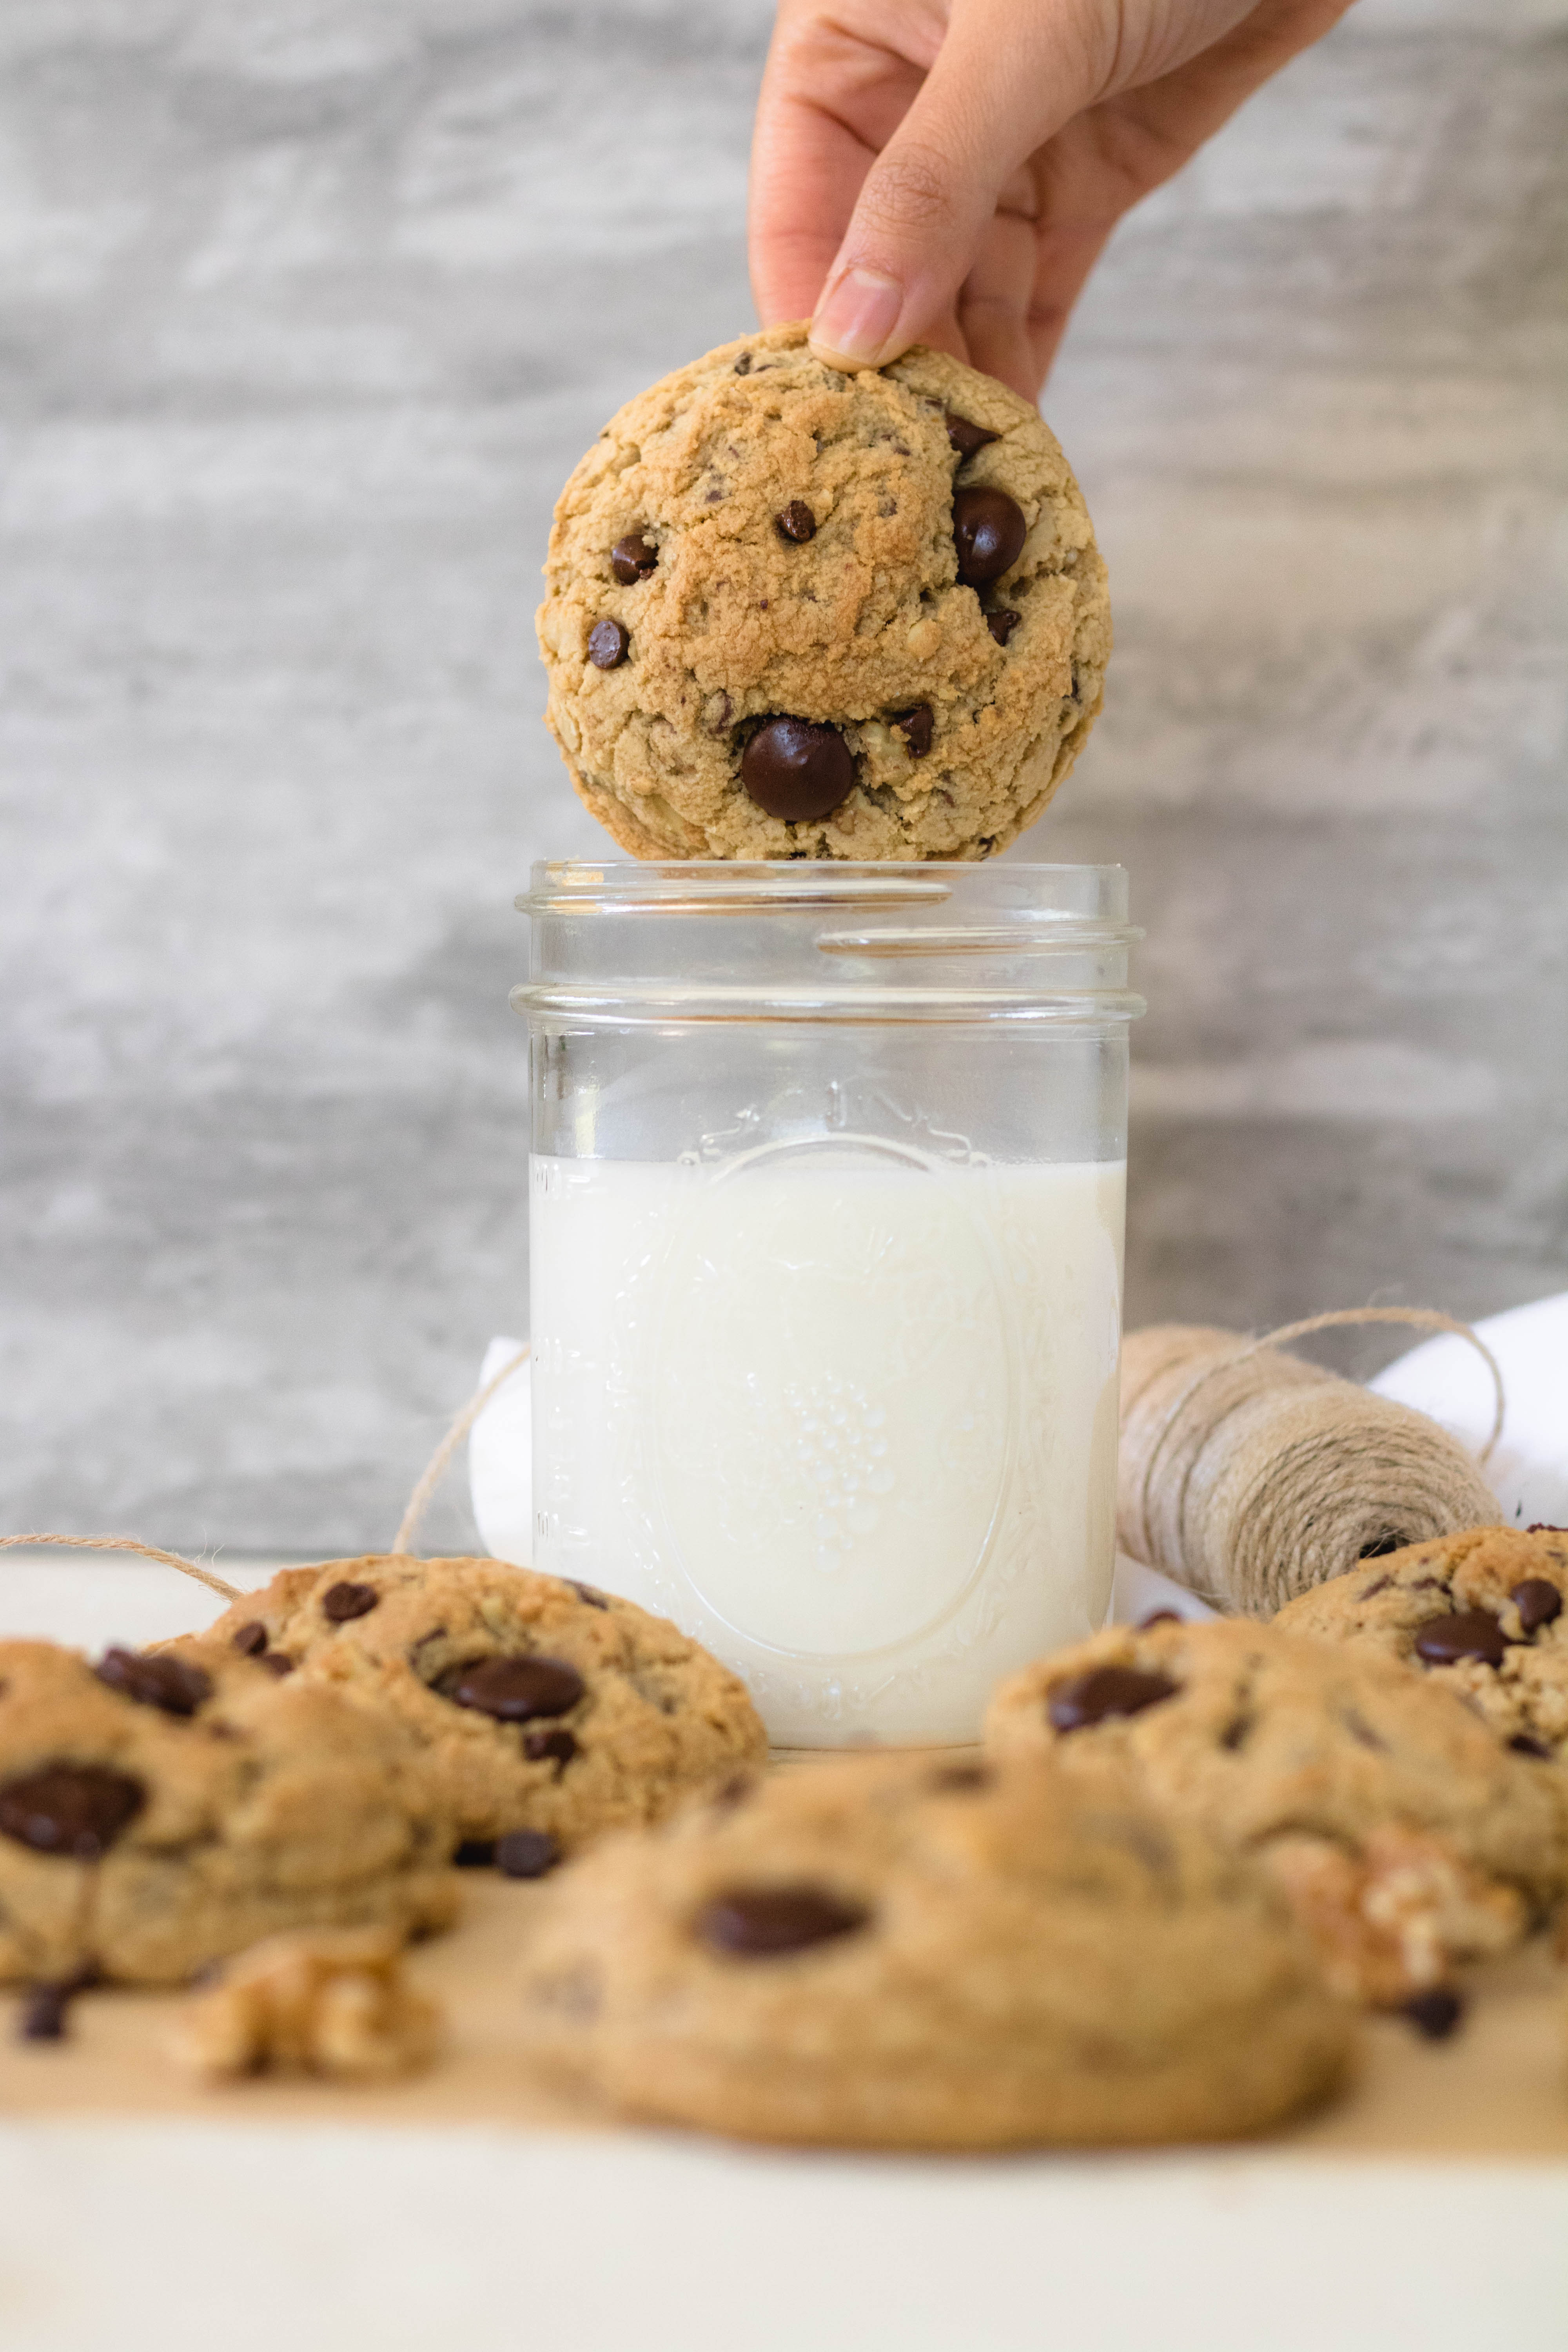 Dunking a chocolate chip cookie in a glass of milk